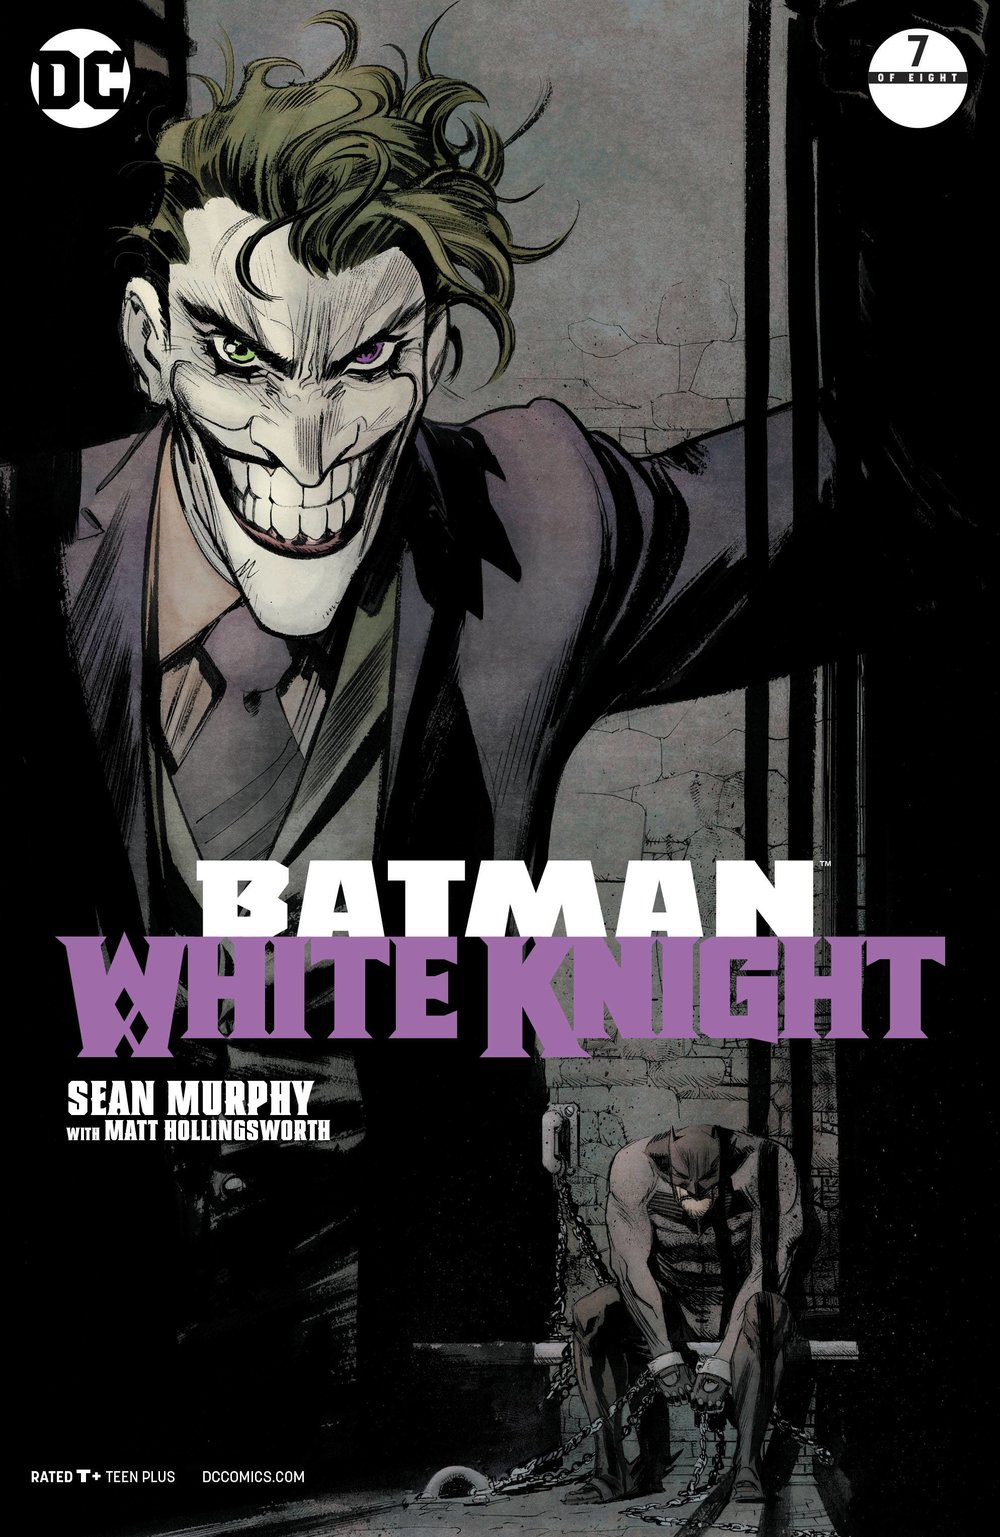 BATMAN WHITE KNIGHT 7 of 8.jpg